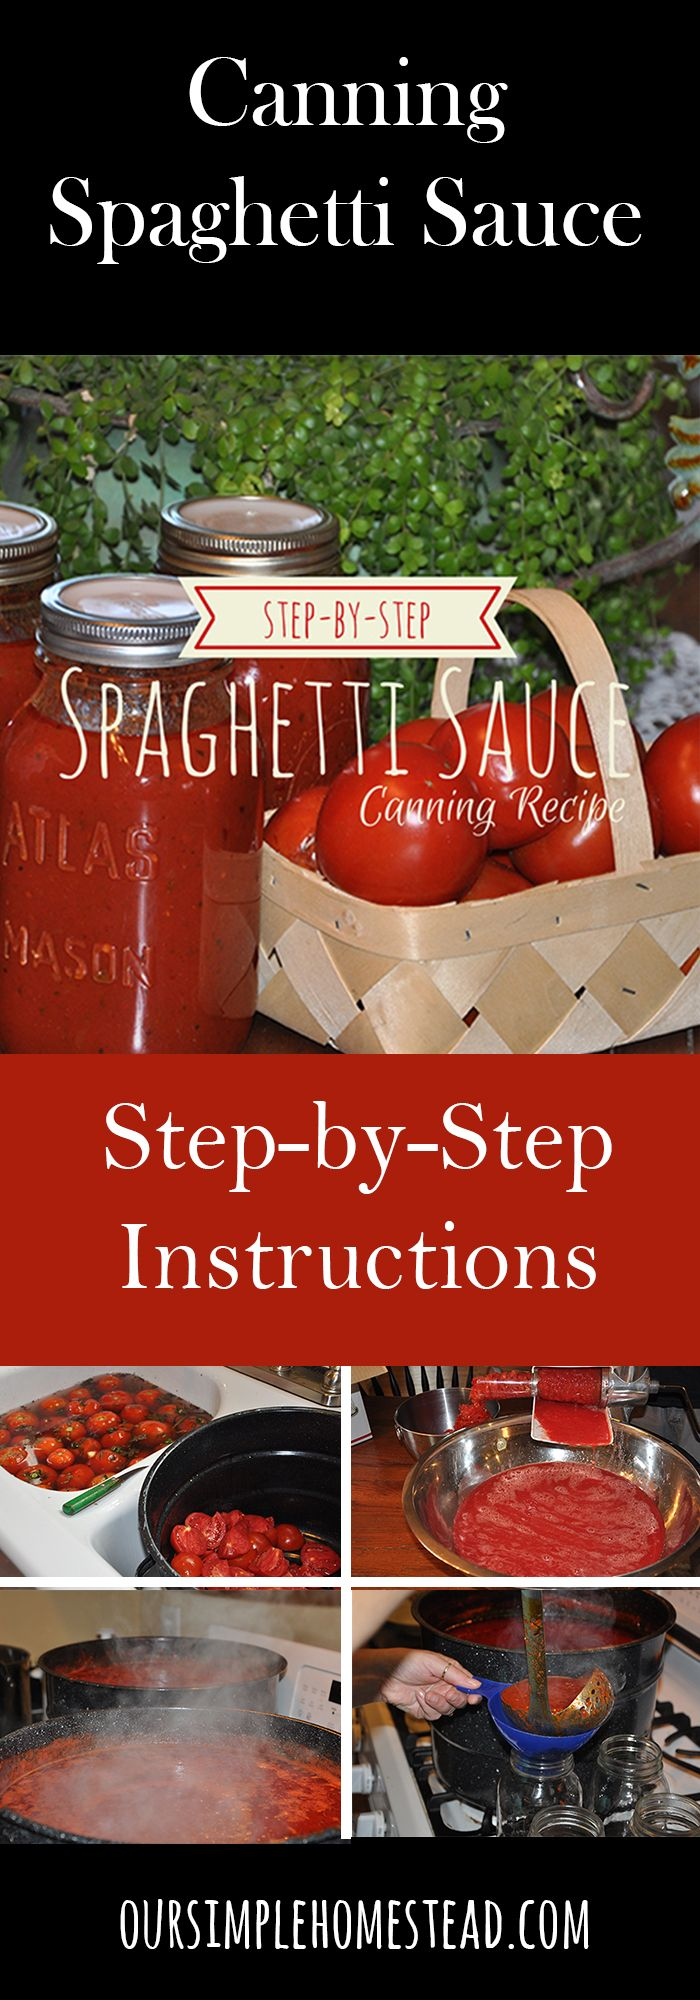 Canning Spaghetti Sauce - My Great Grandmothers canned spaghetti sauce recipe. Step by Step Instructions.